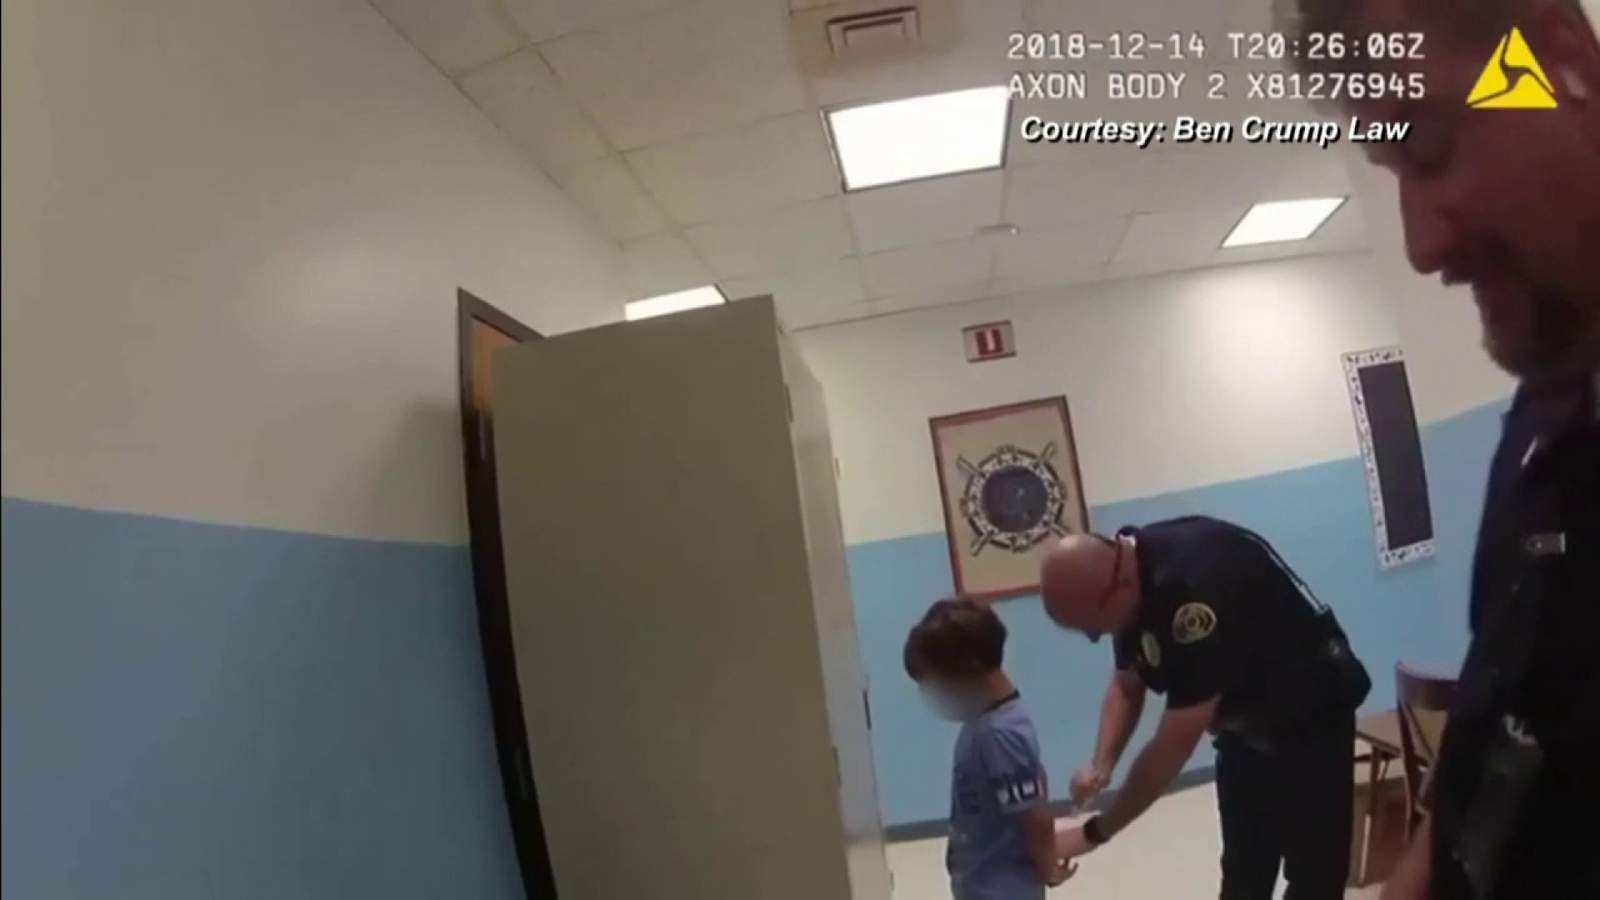 Lawsuit filed after police handcuff 8-year-old boy on video